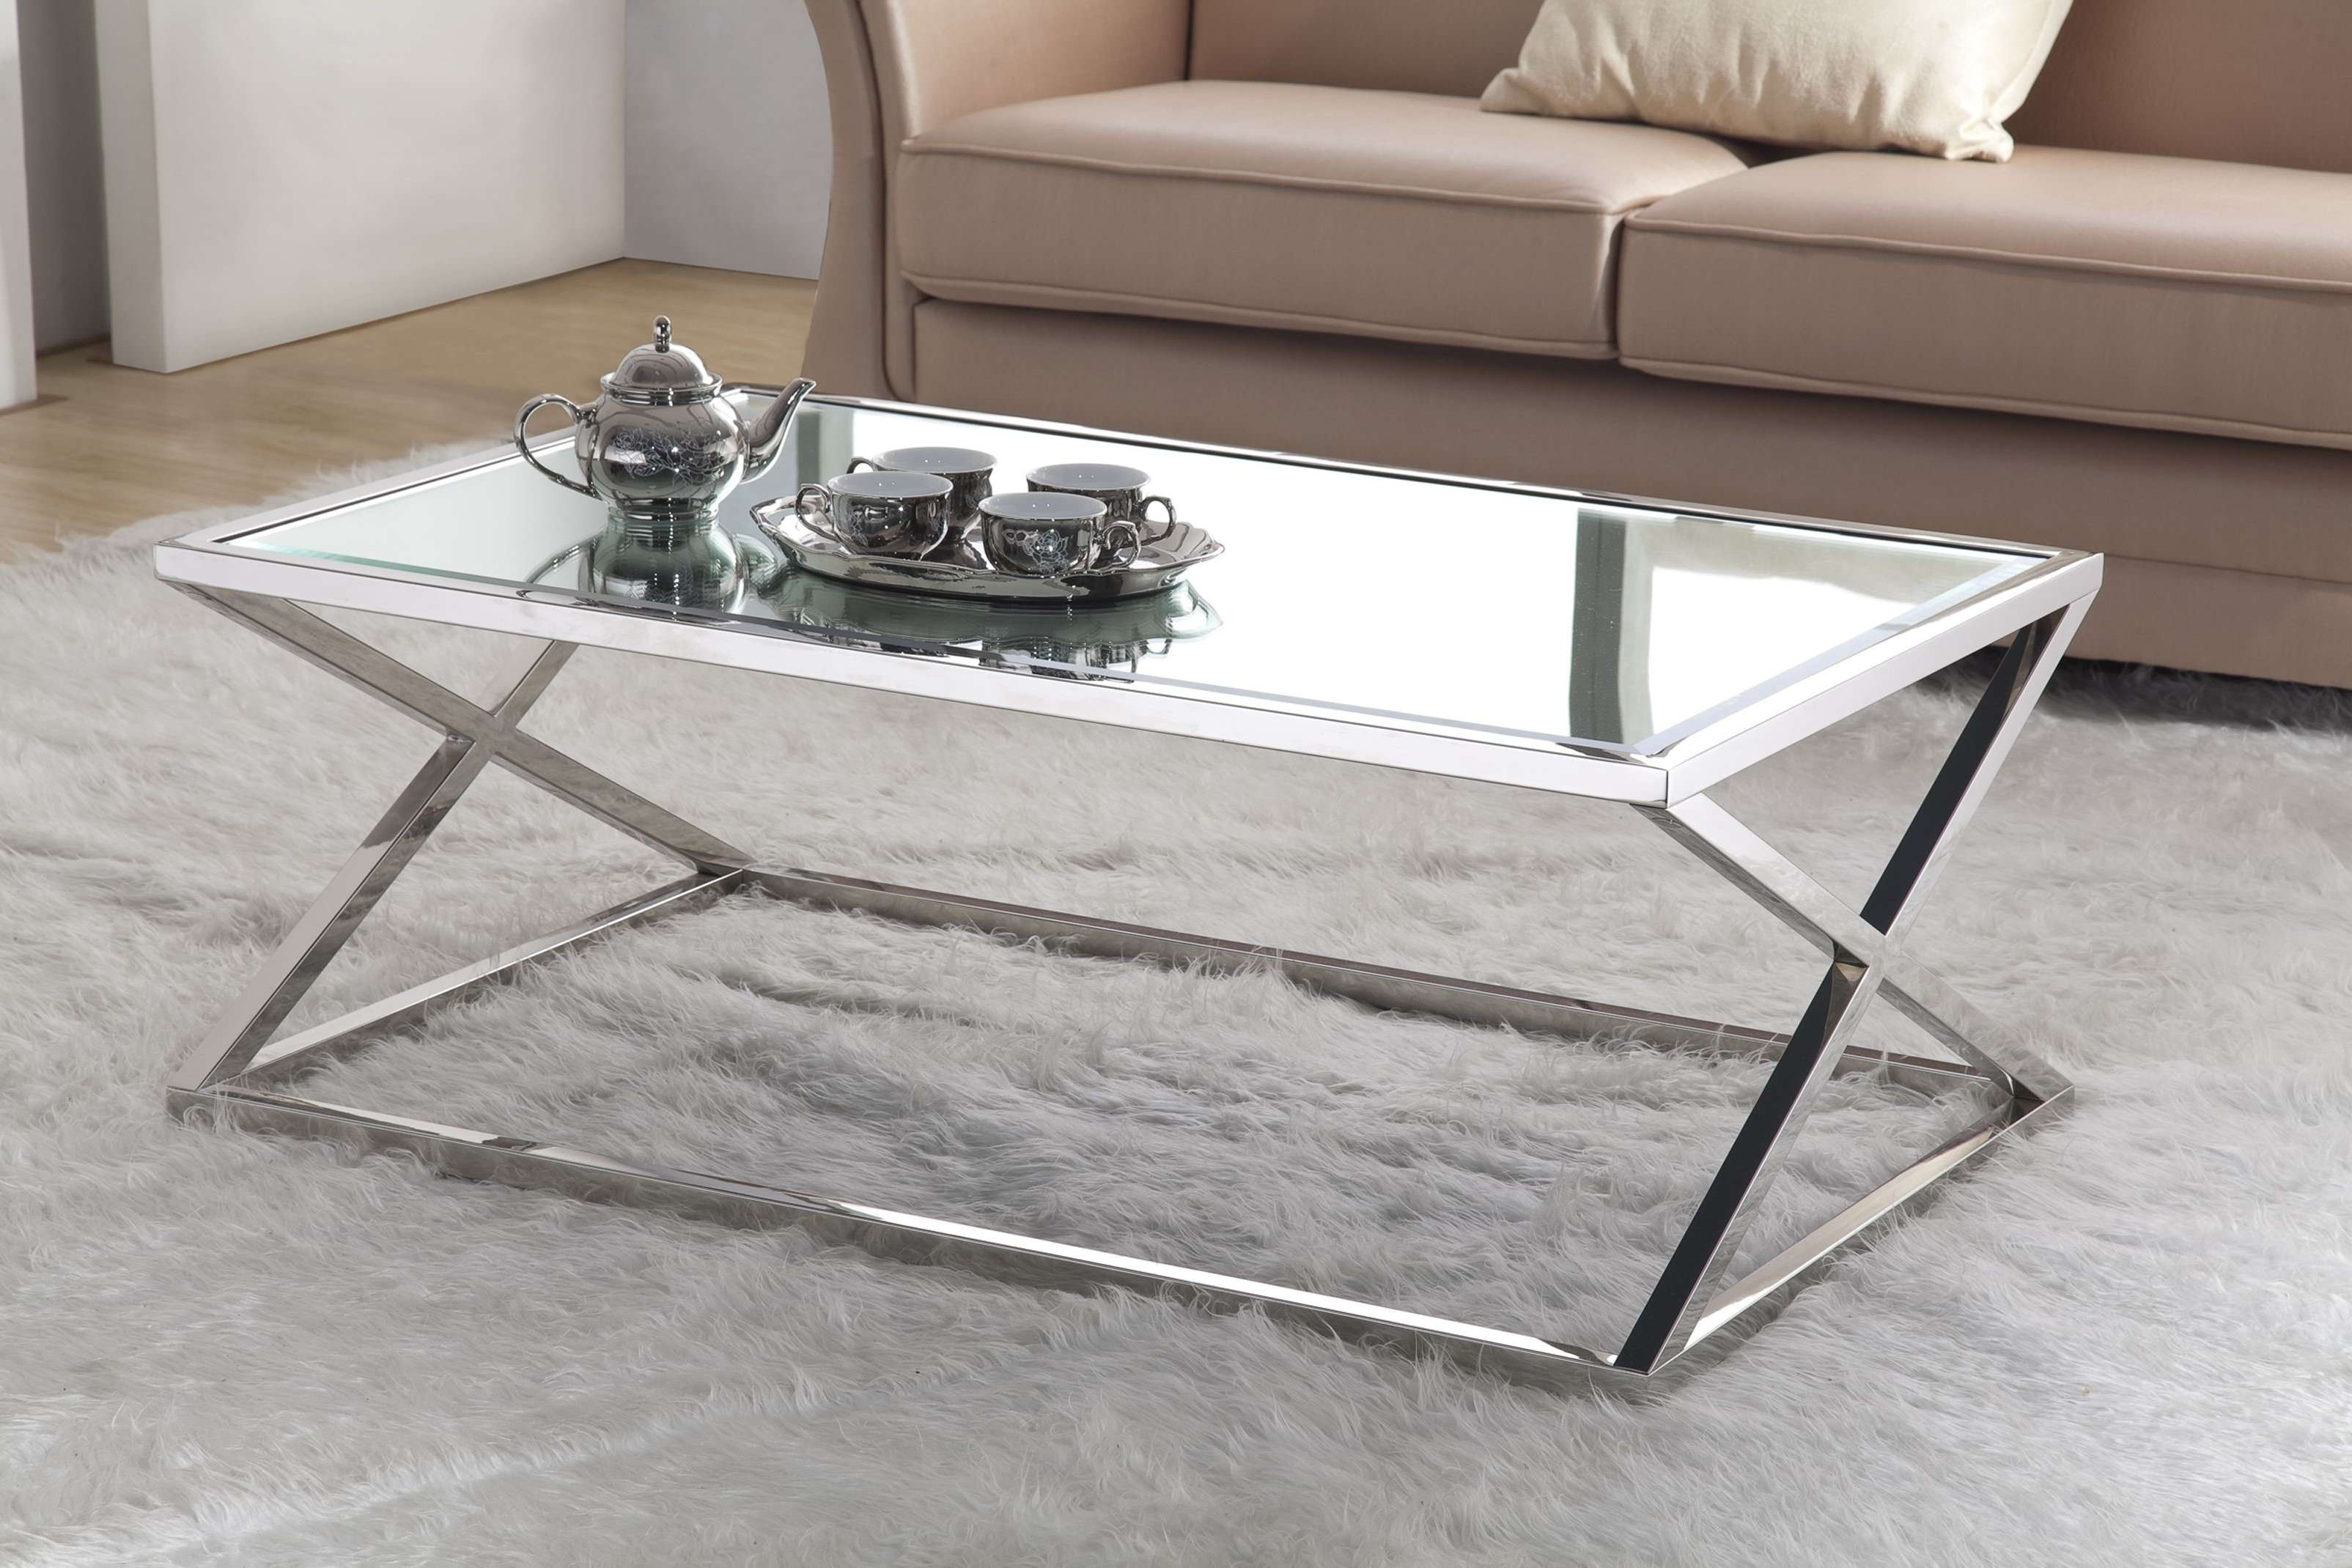 Attractive Silver Coffee Table Decorations — The Home Redesign For Best And Newest Metal Glass Coffee Tables (Gallery 13 of 20)